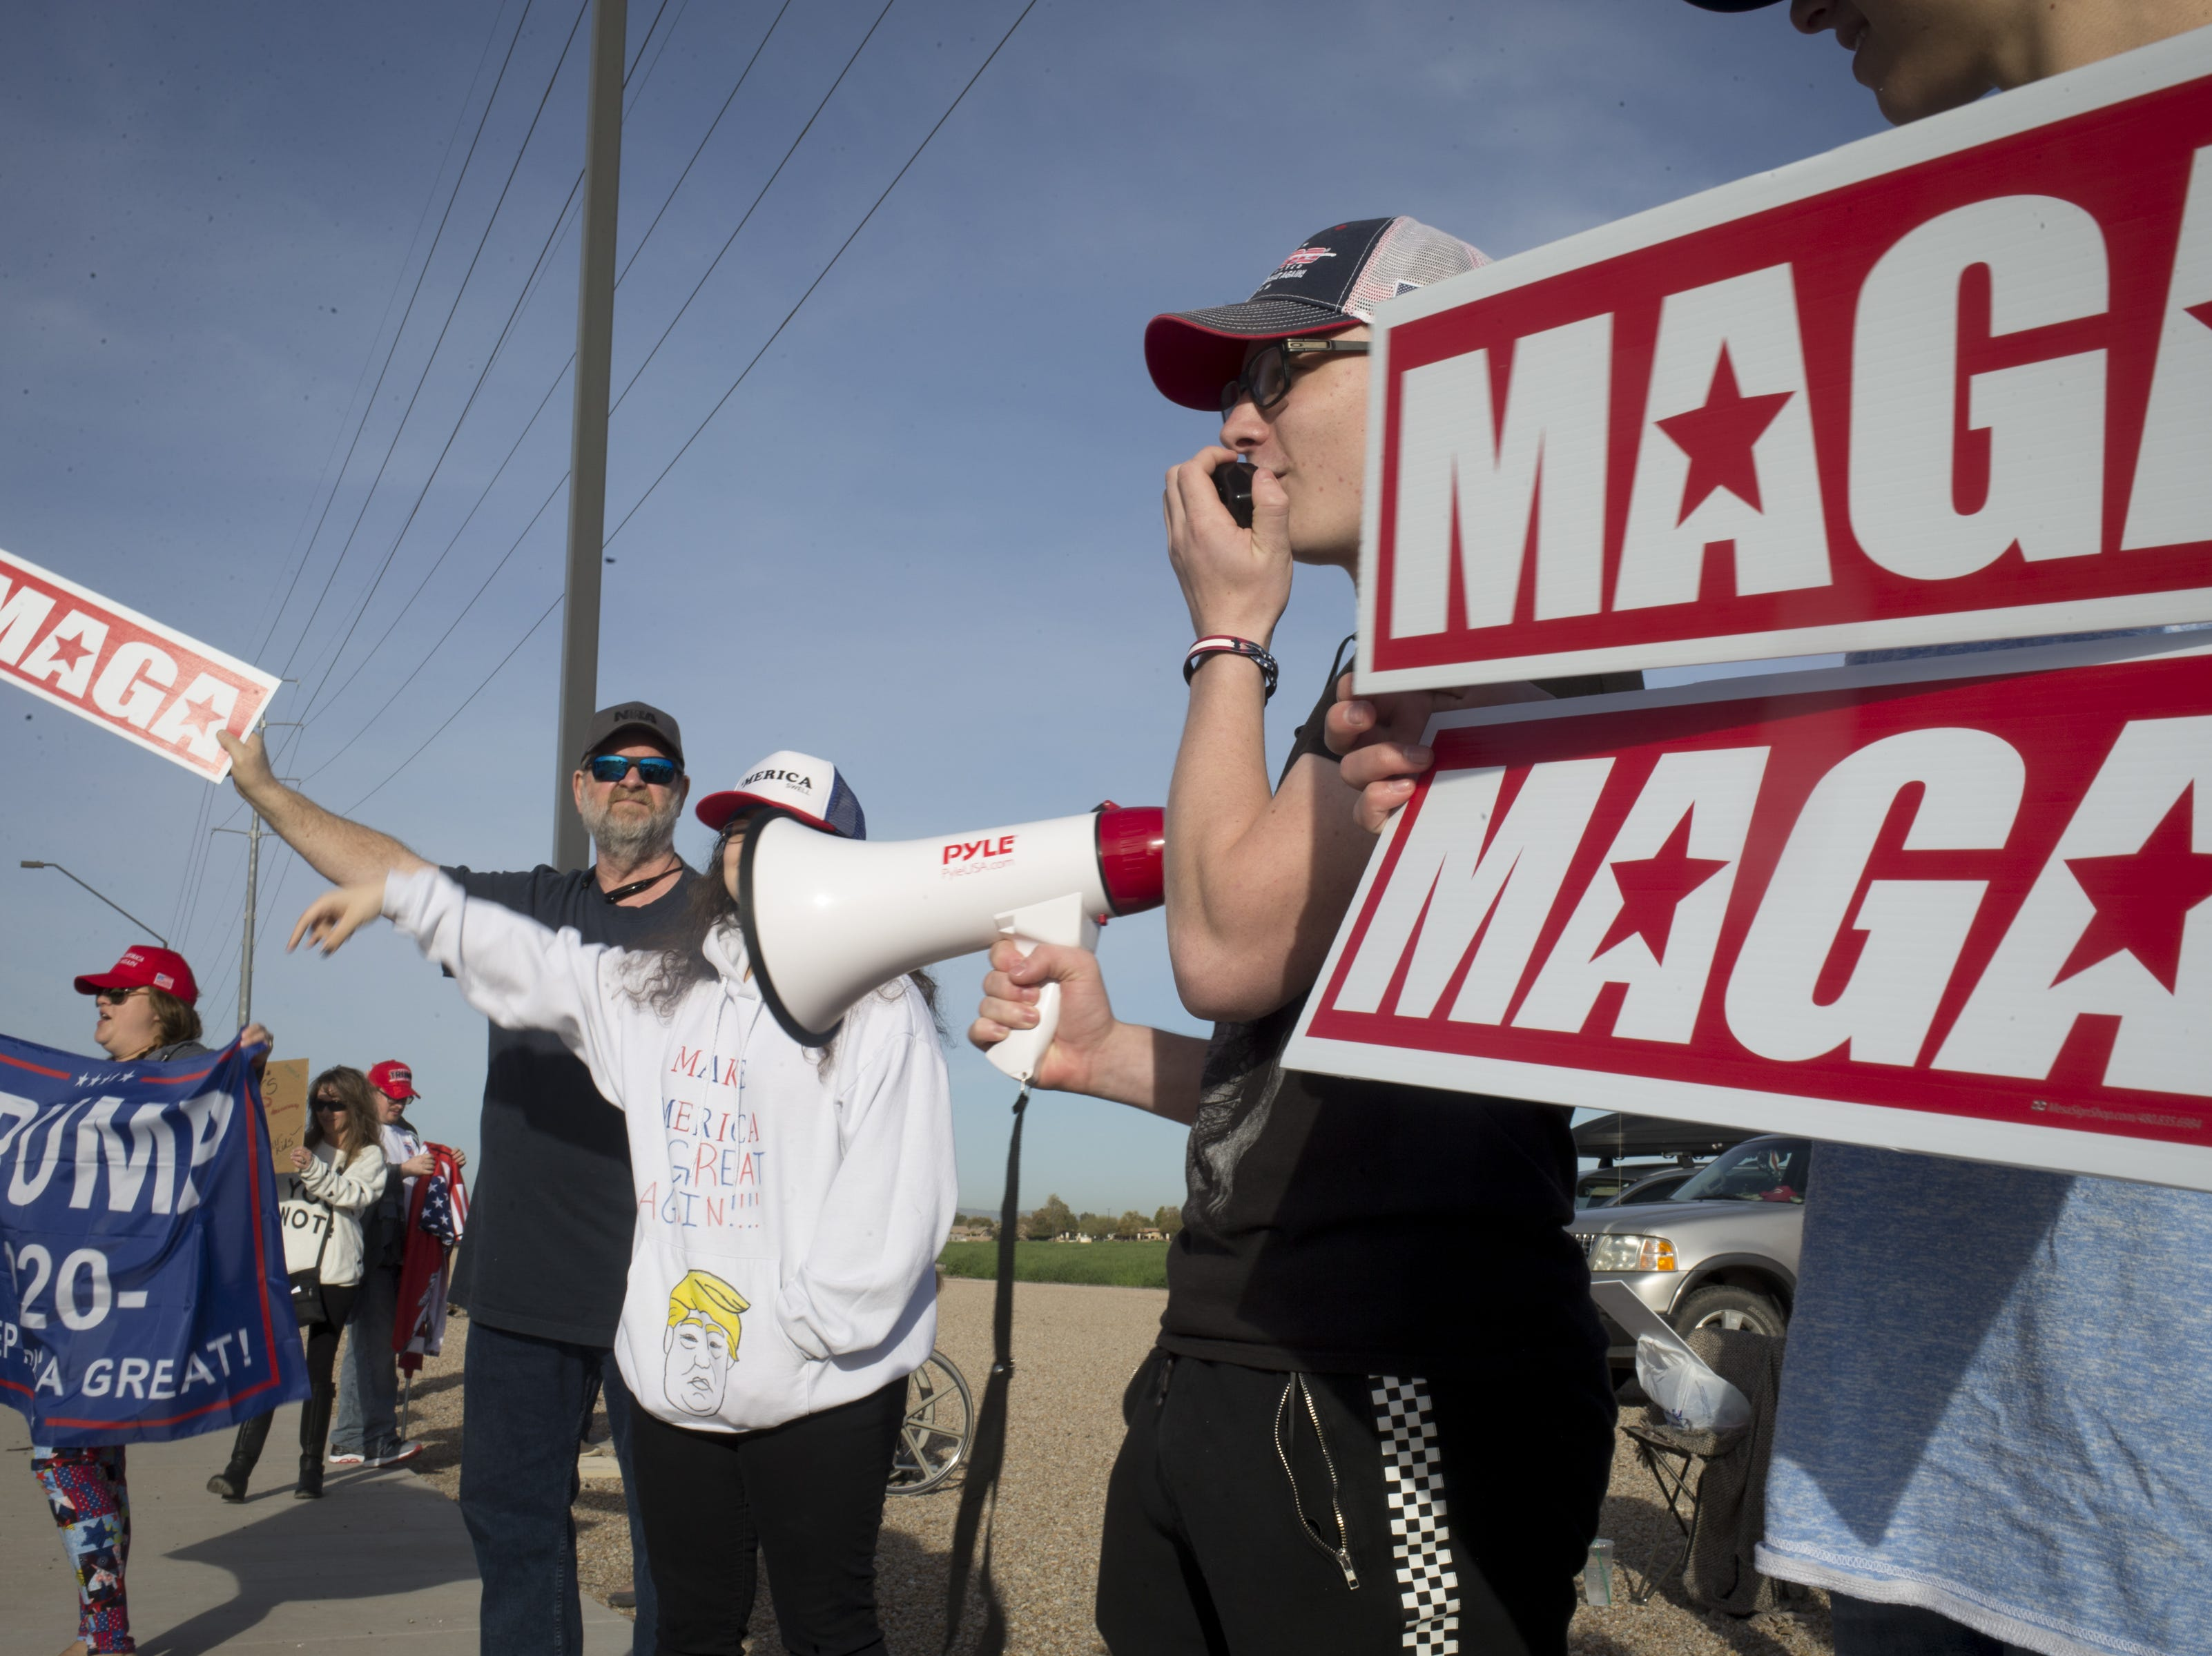 Sophomore Sam Wurst (second from right) and others protests on Queen Creek Road March 4, 2019, across from Perry High School in Gilbert.